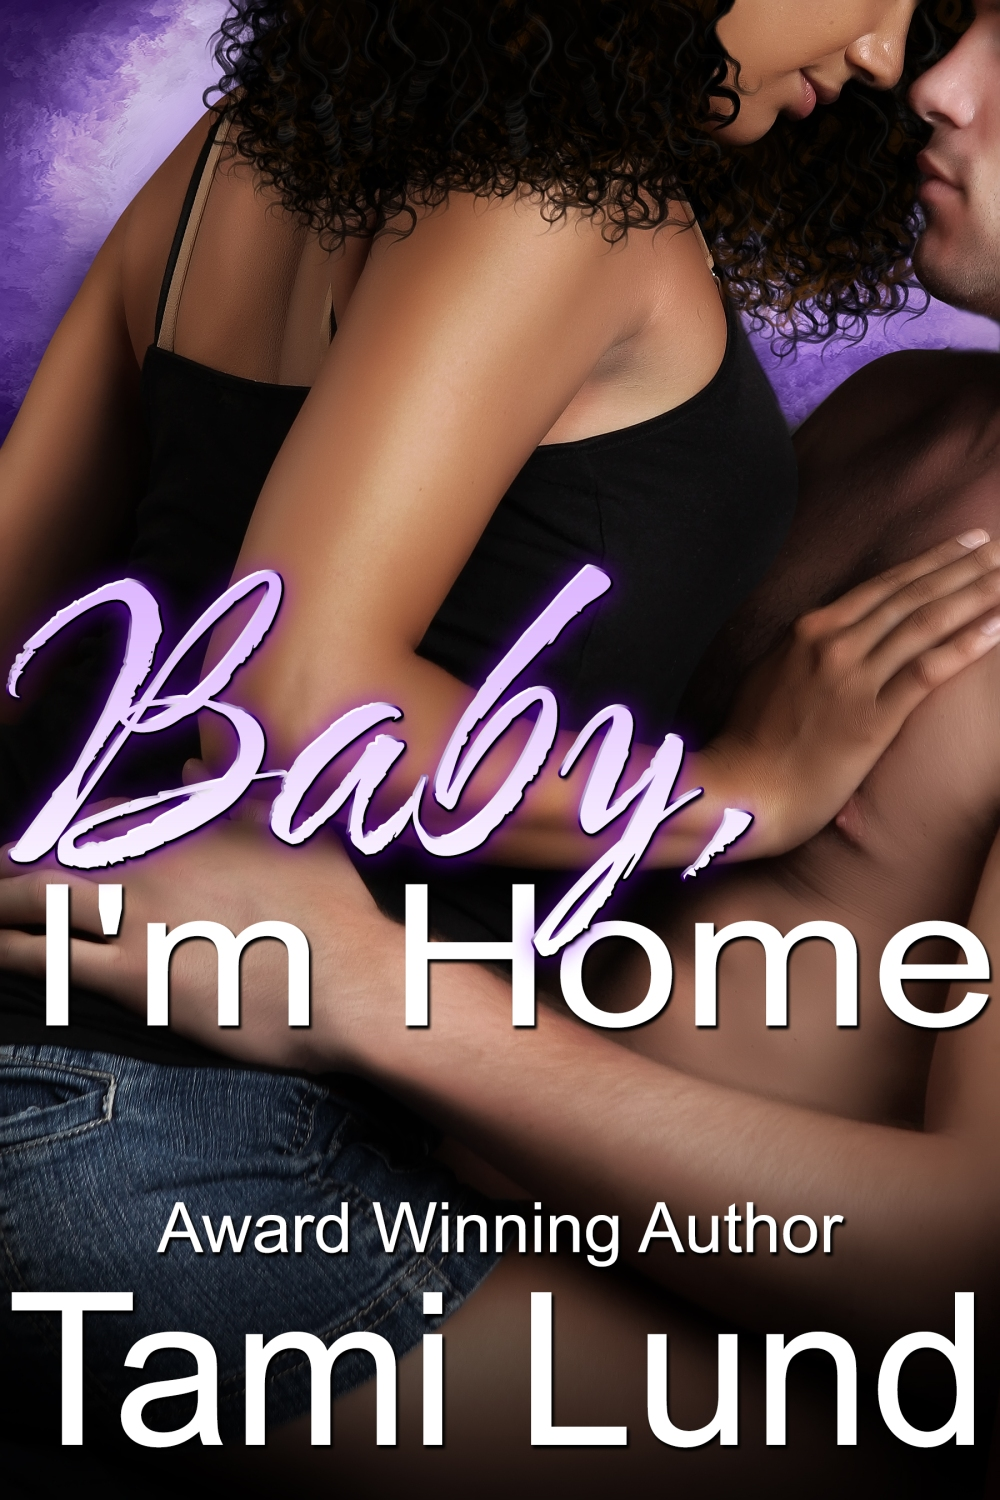 Baby Im Home-ebook (1)